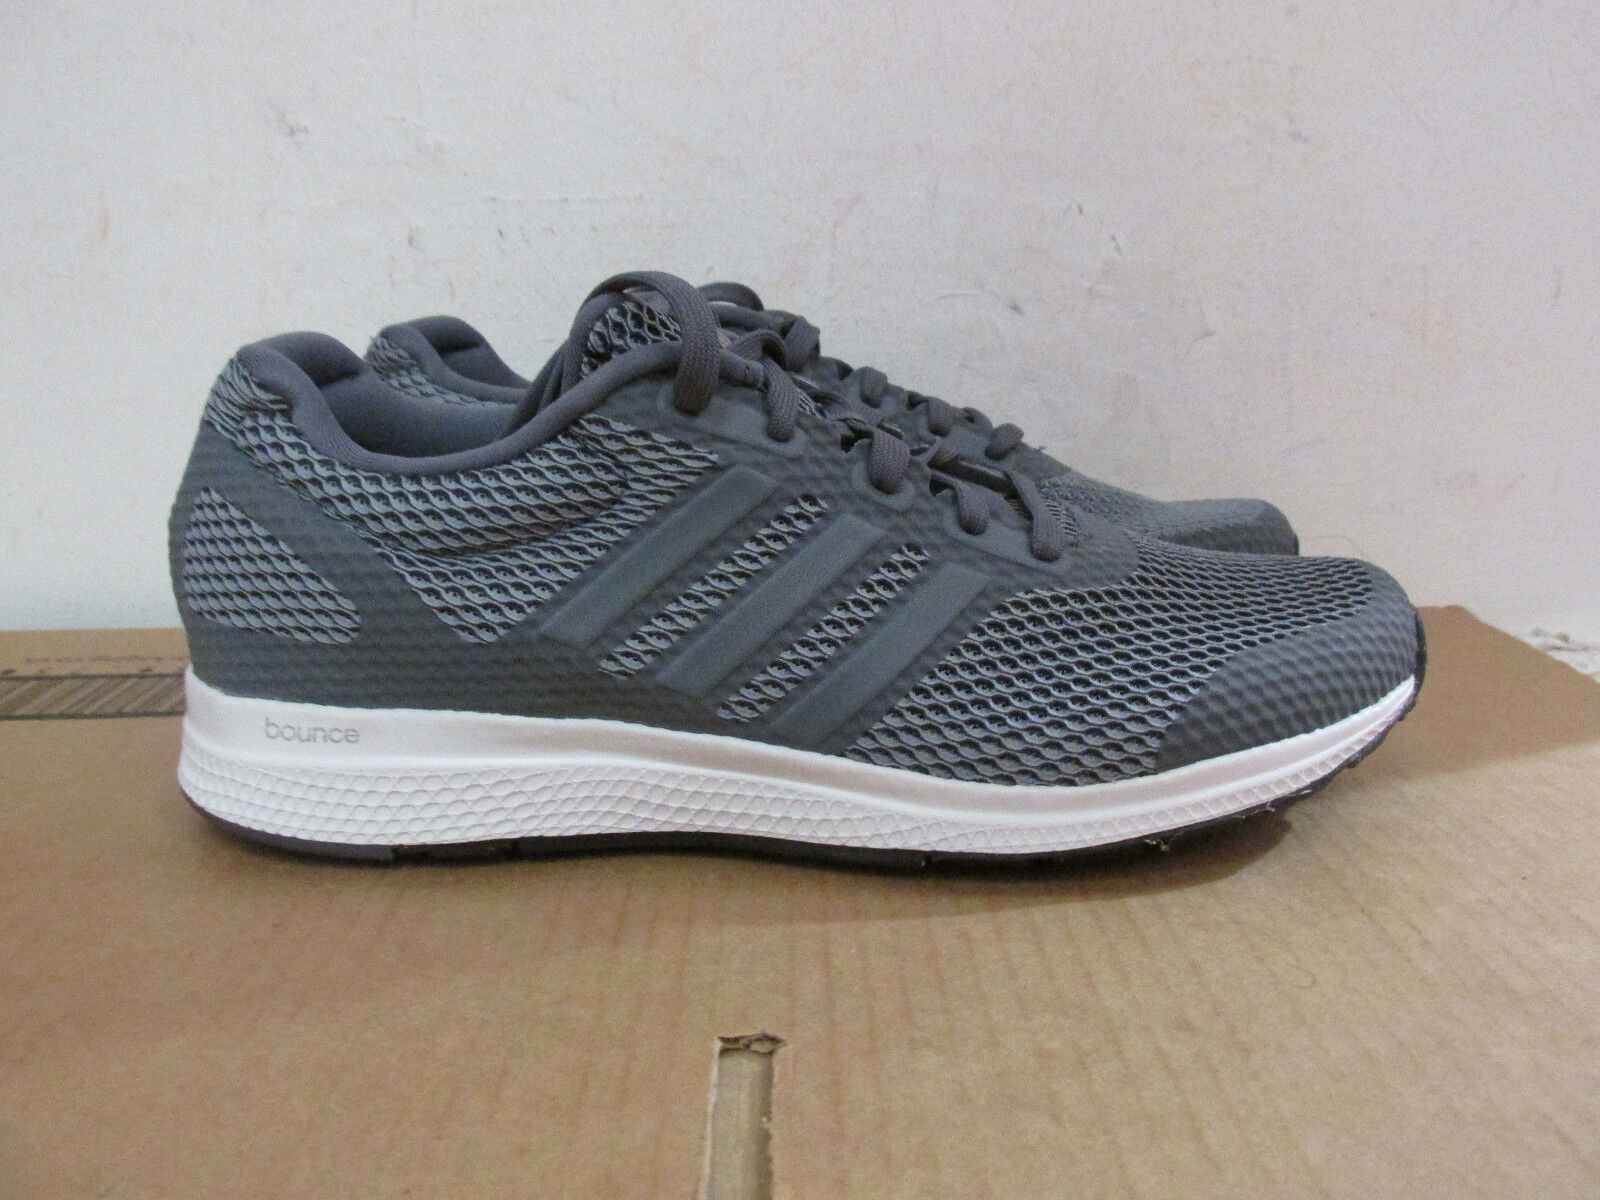 Adidas Mana Bounce B42432 homme trainers sneakers SAMPLE